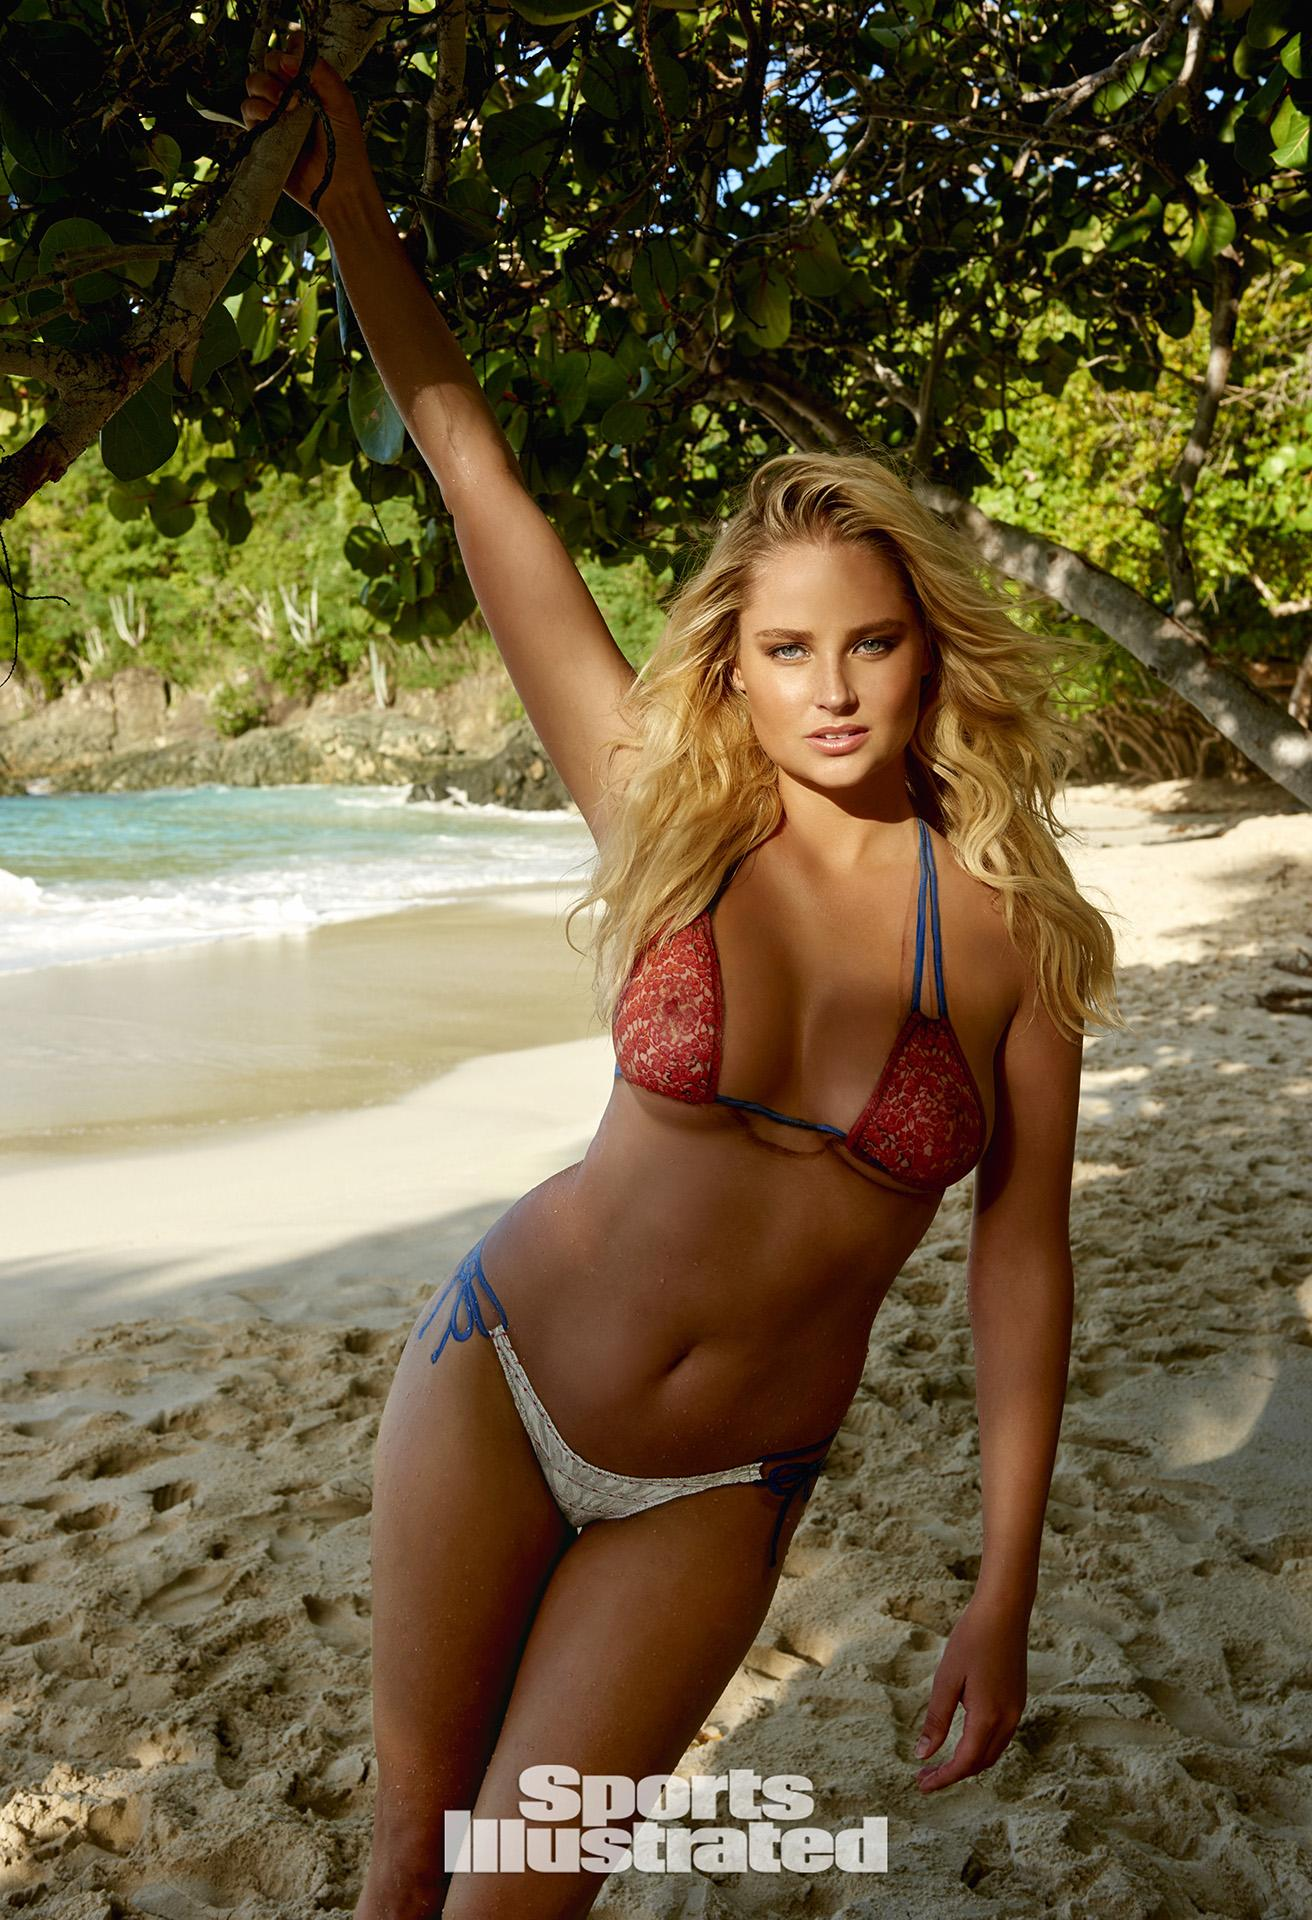 ... Morton Swimsuit Body Paint Photos, Sports Illustrated Swimsuit 2015